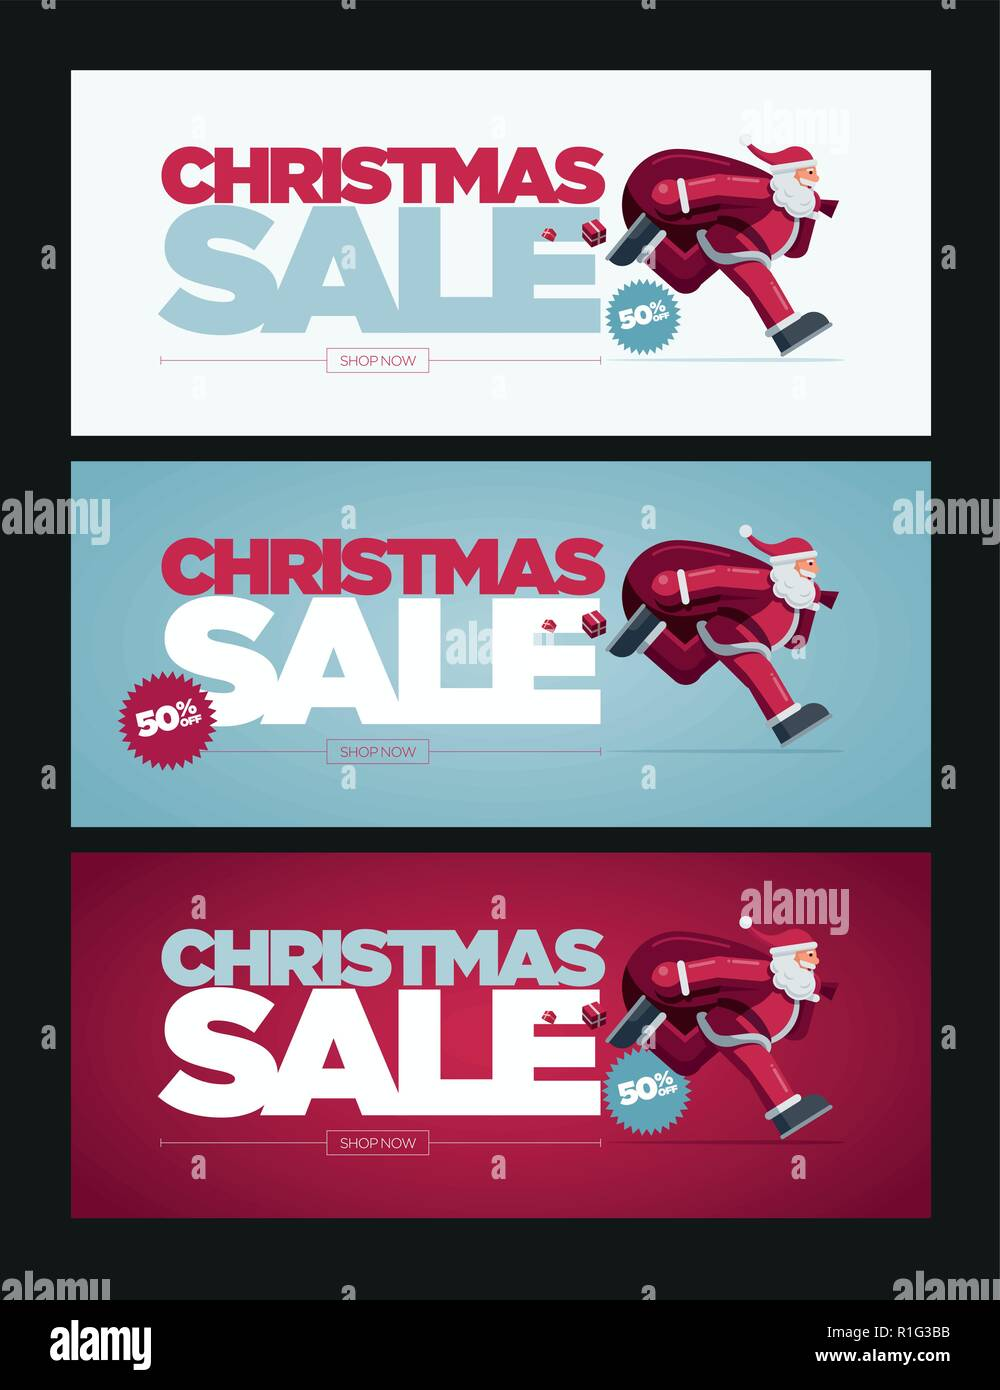 Vector Christmas banner design set with Santa Claus illustration. Christmas Sale Concept Design. Best for poster, advert or social media post. - Stock Vector